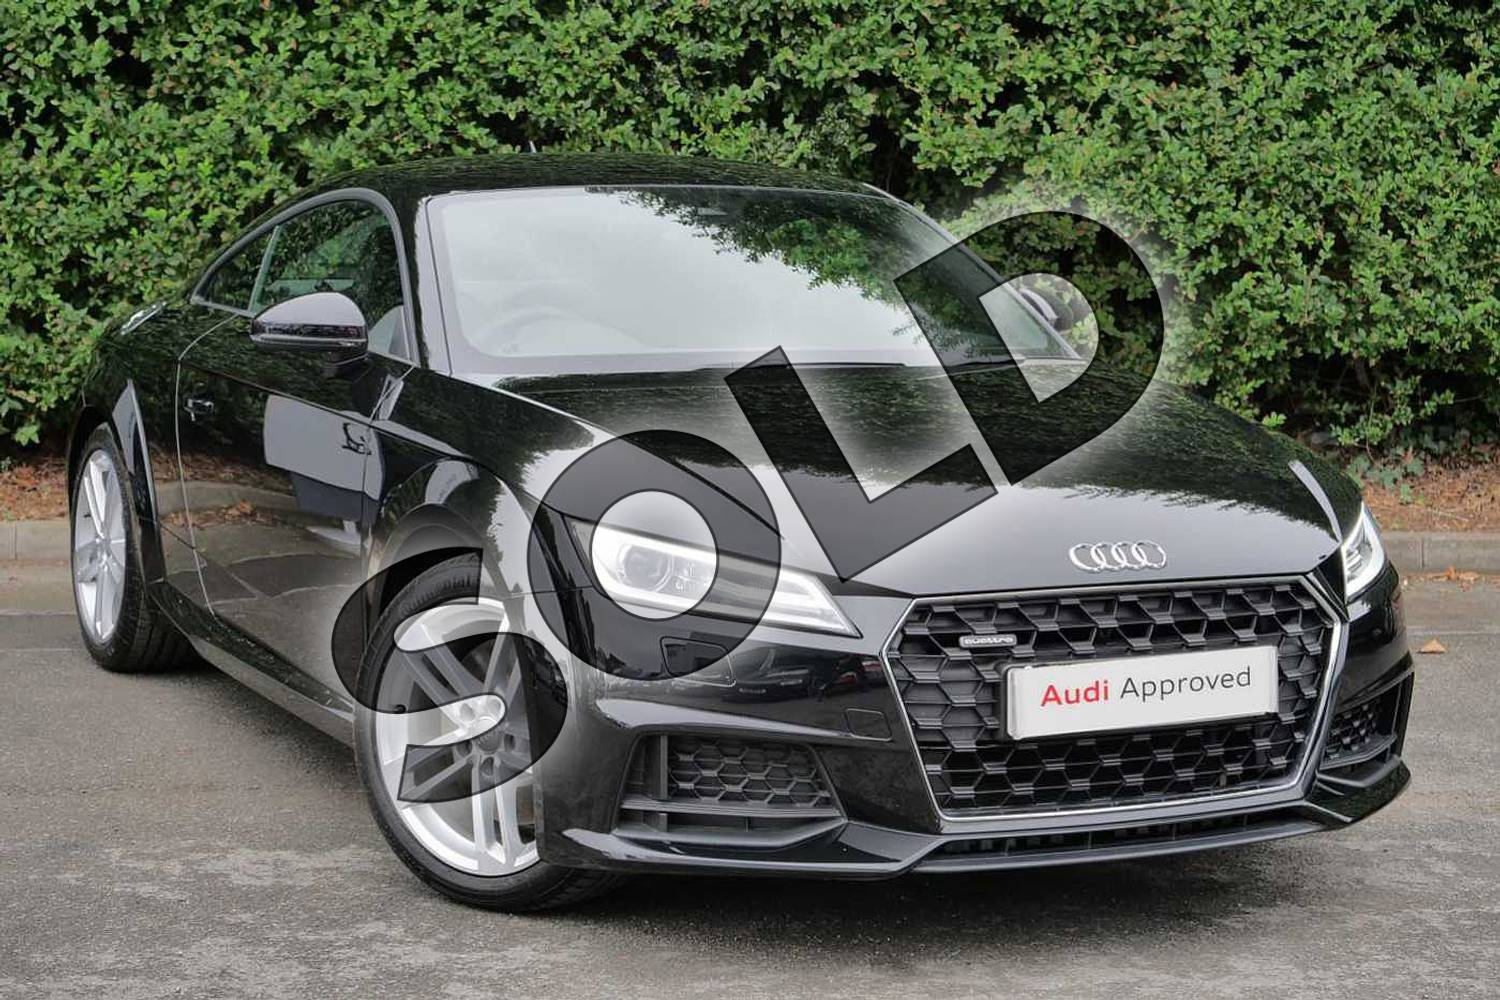 2019 Audi TT Coupe 45 TFSI Quattro Sport 2dr S Tronic in Myth Black Metallic at Worcester Audi